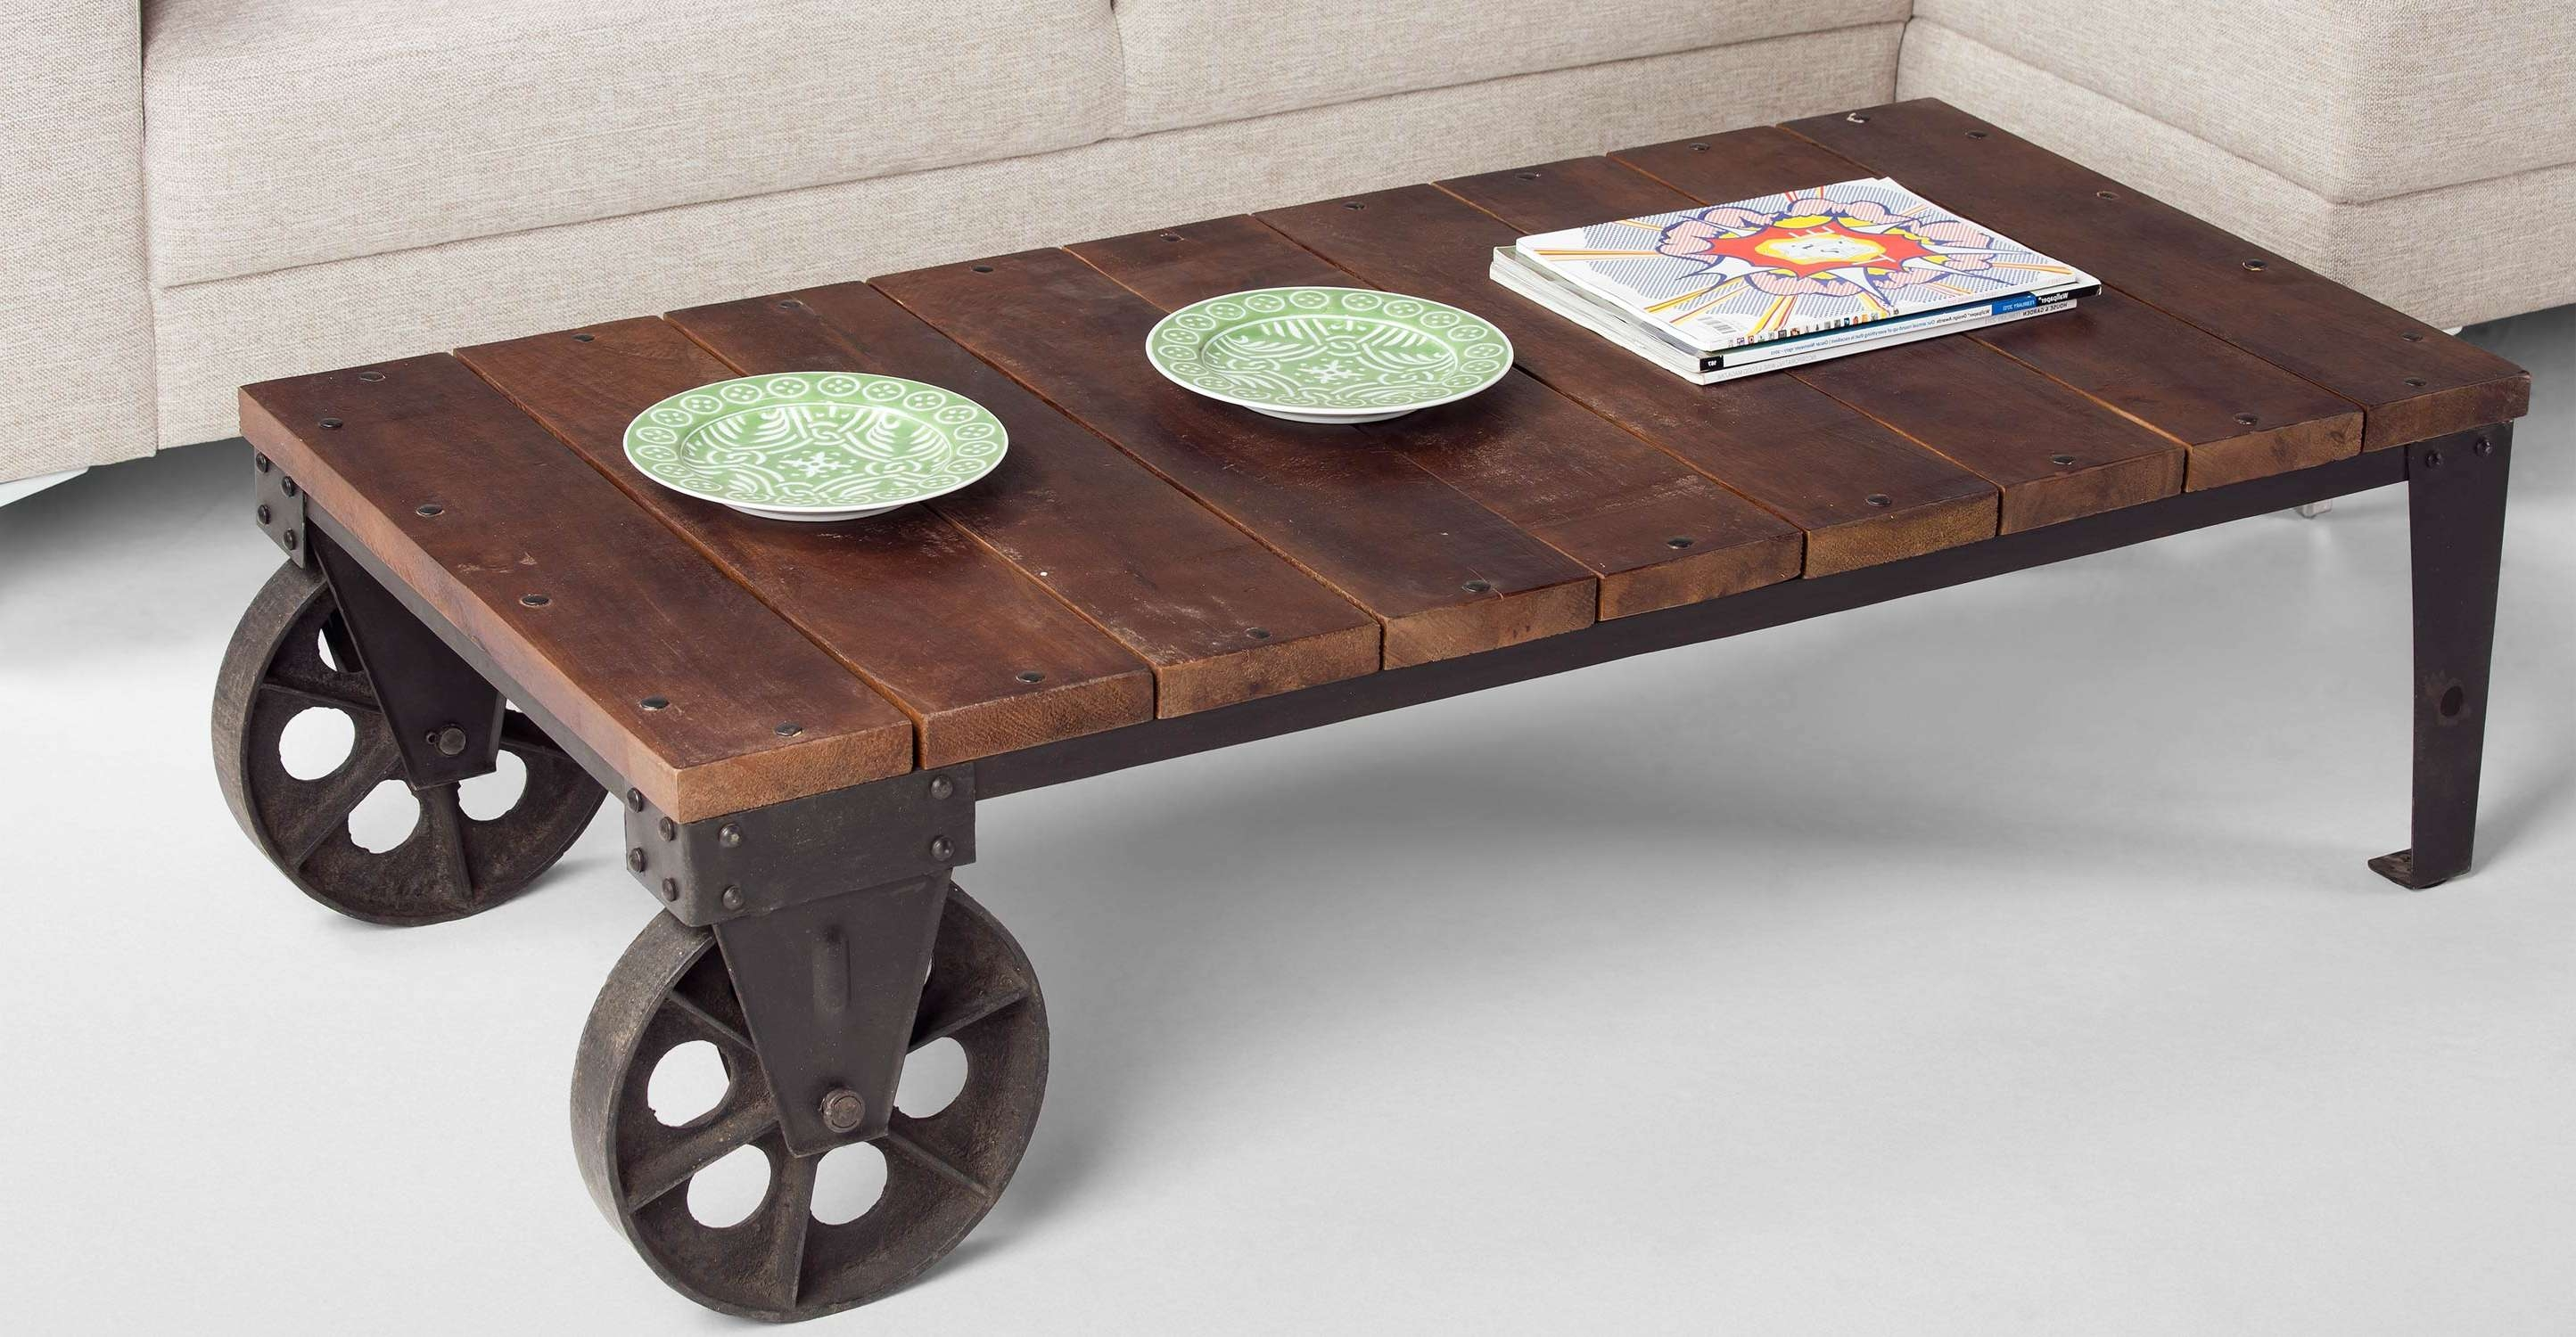 Coffee Tables : Fabulous Industrial Coffee Table On Wheels For In Most Current Coffee Tables With Wheels (View 10 of 20)